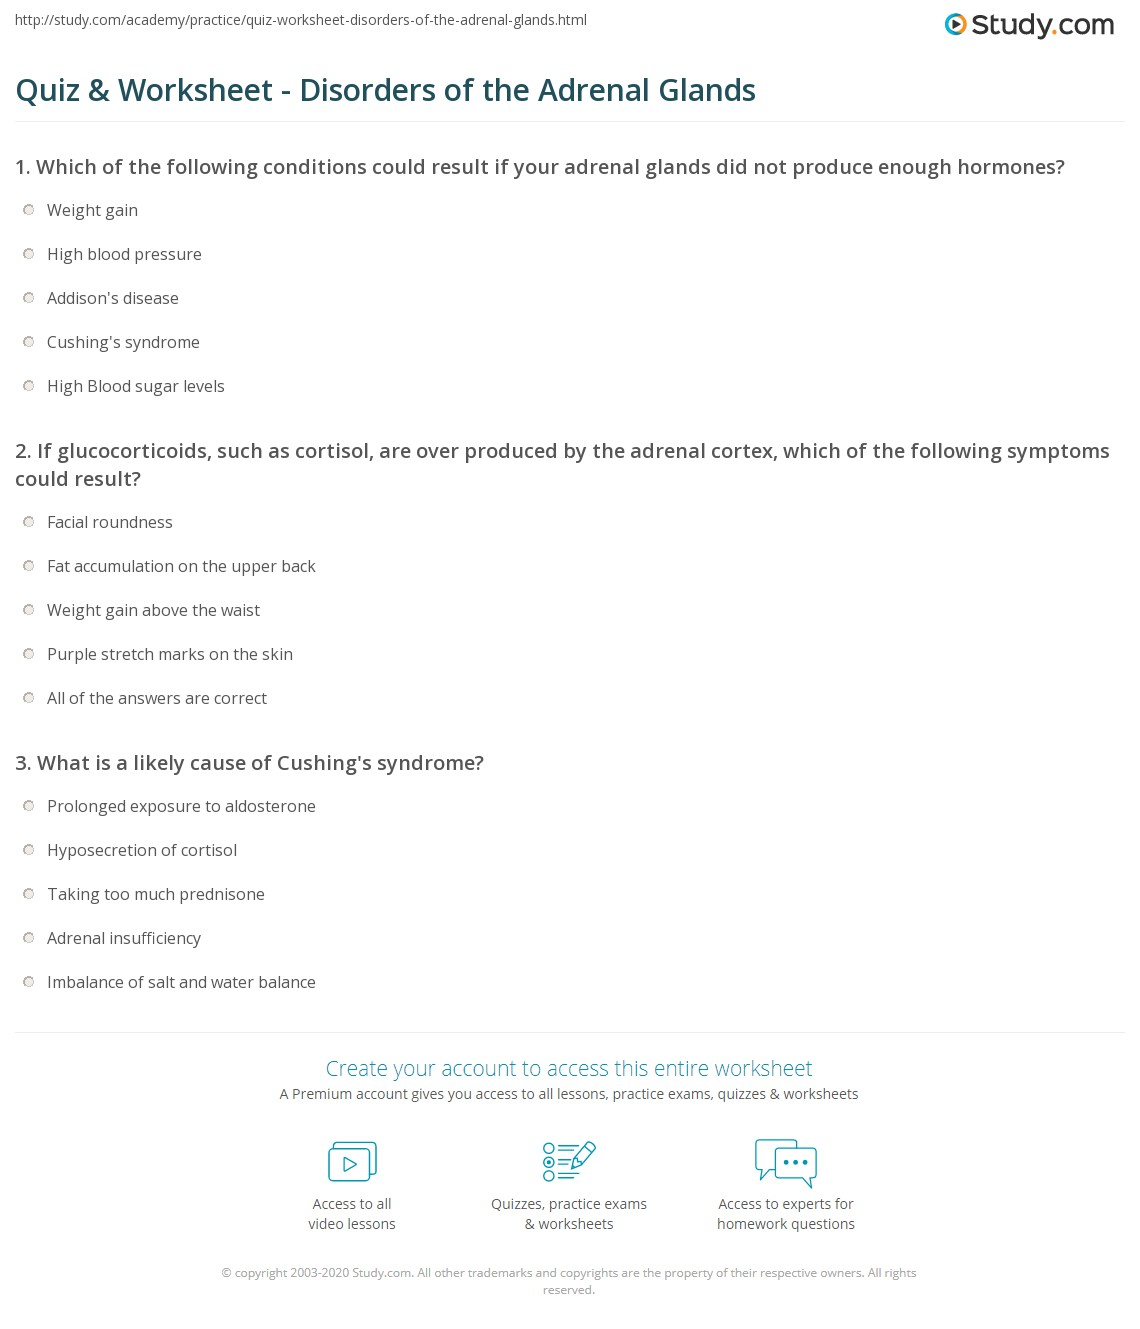 Quiz Worksheet Disorders Of The Adrenal Glands Study